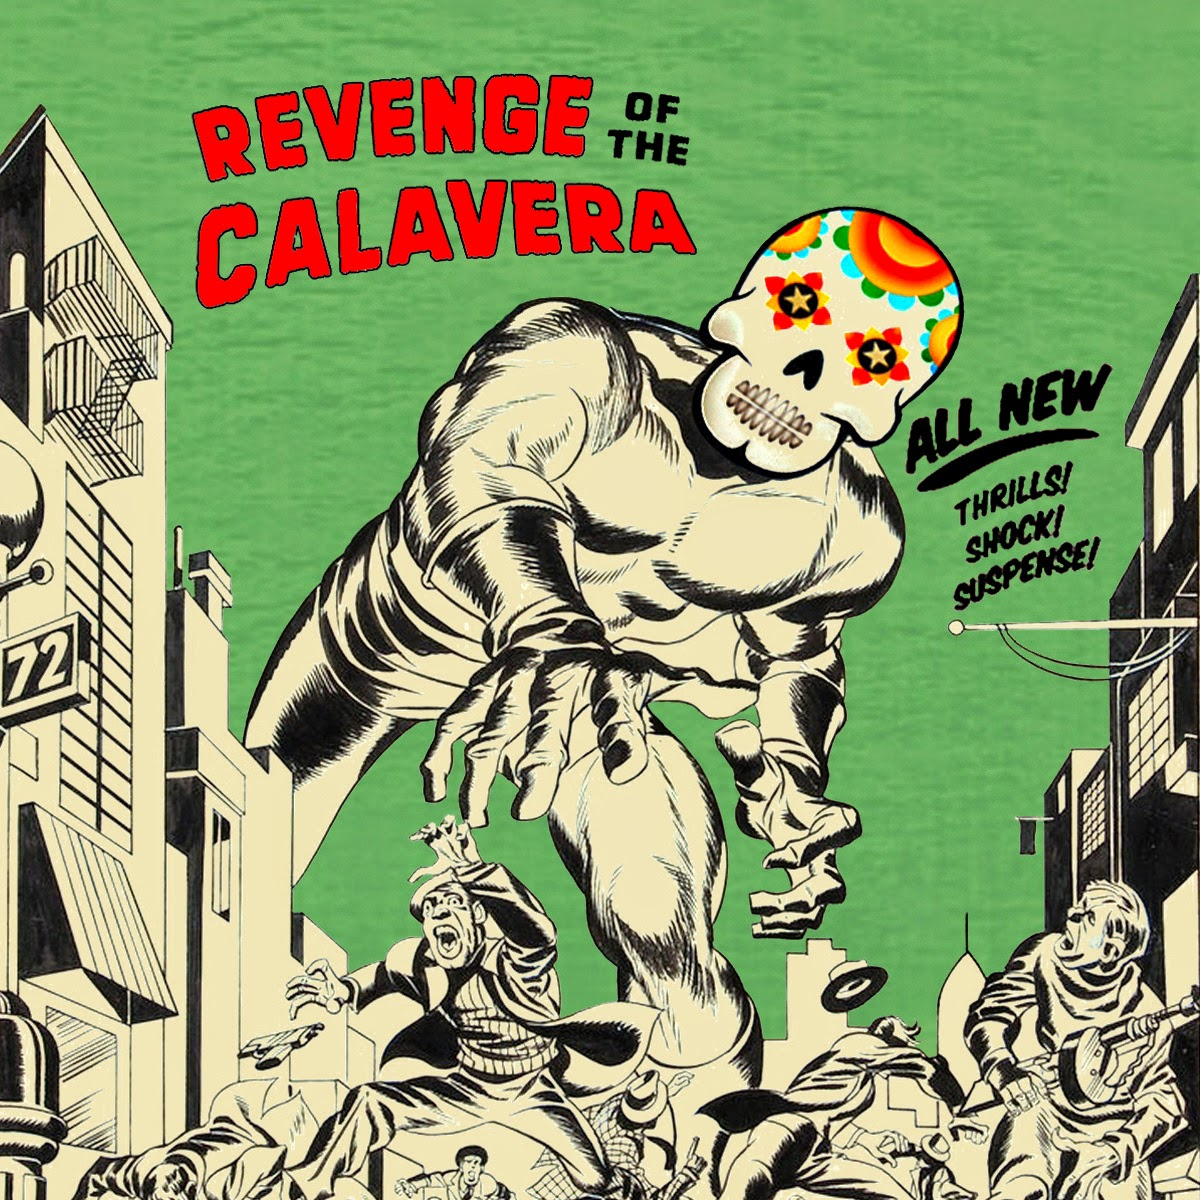 www.d4am.net/2014/04/deela-revenge-of-calavera-free-download.html